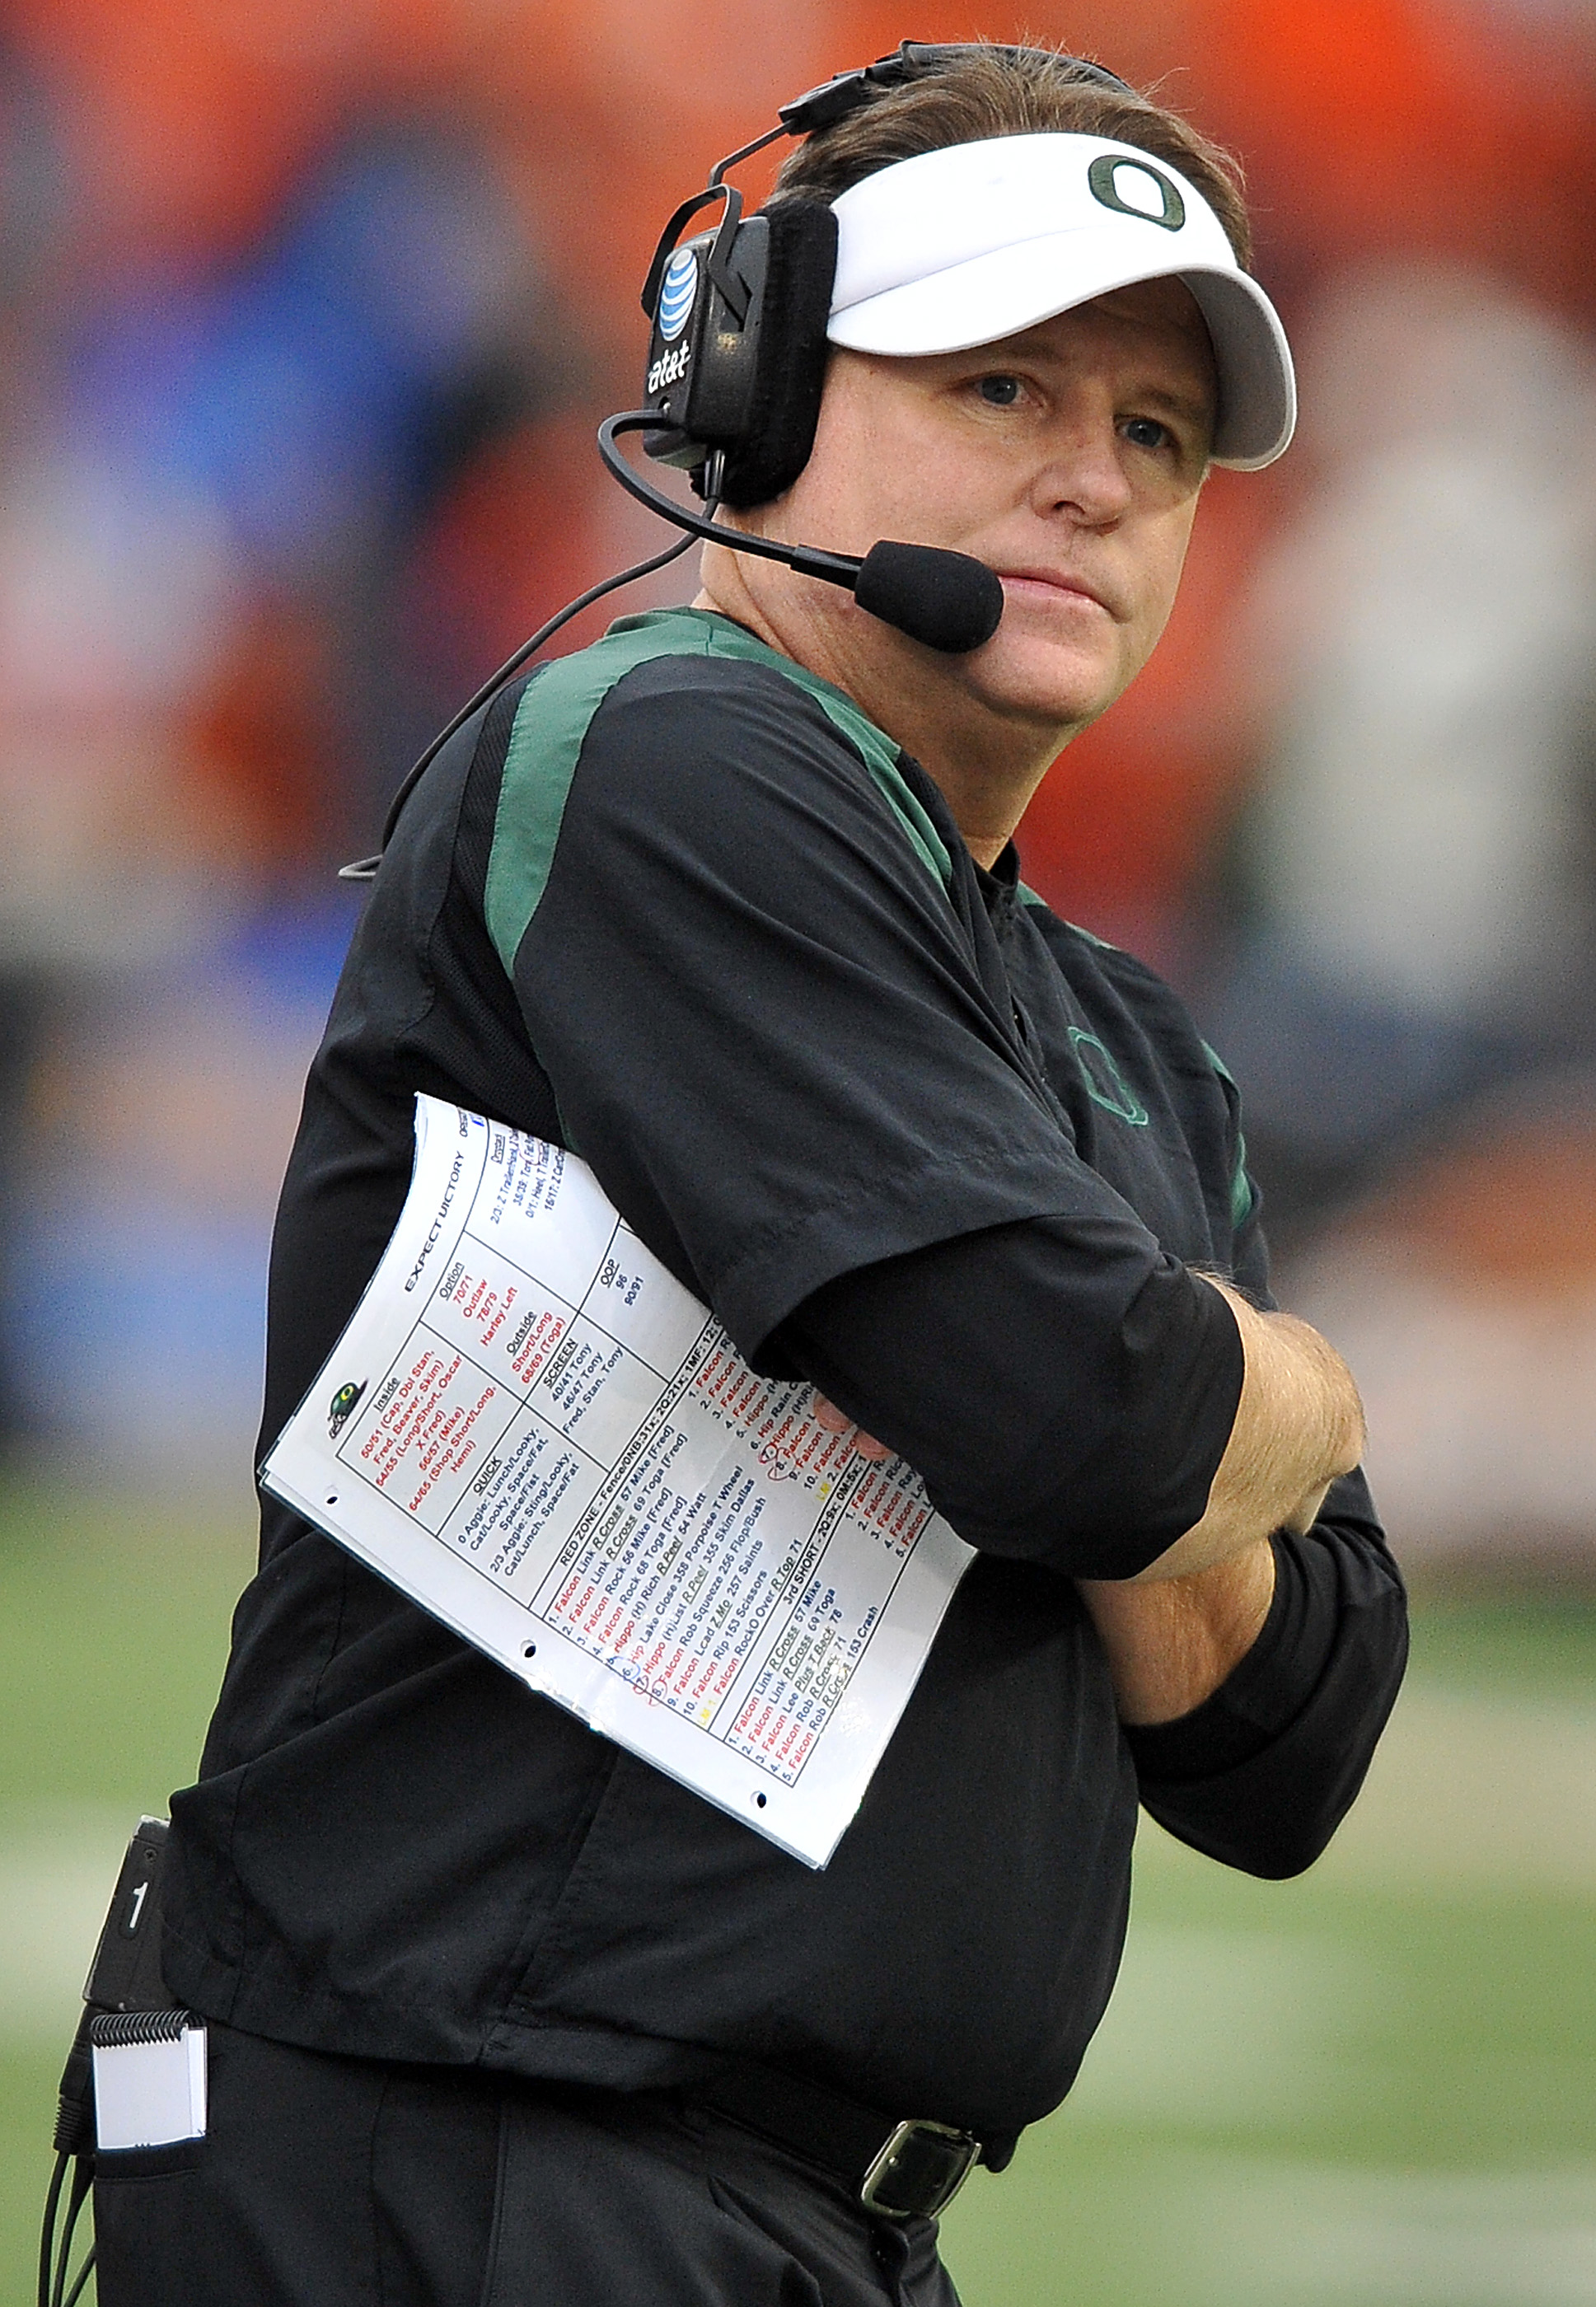 CORVALLIS, OR - DECEMBER 4: Head coach Chip Kelly of the Oregon Ducks looks on from the sidelines in the fourth quarter of the game against the the Oregon State Beavers at Reser Stadium on December 4, 2010 in Corvallis, Oregon. The Ducks beat the Beavers